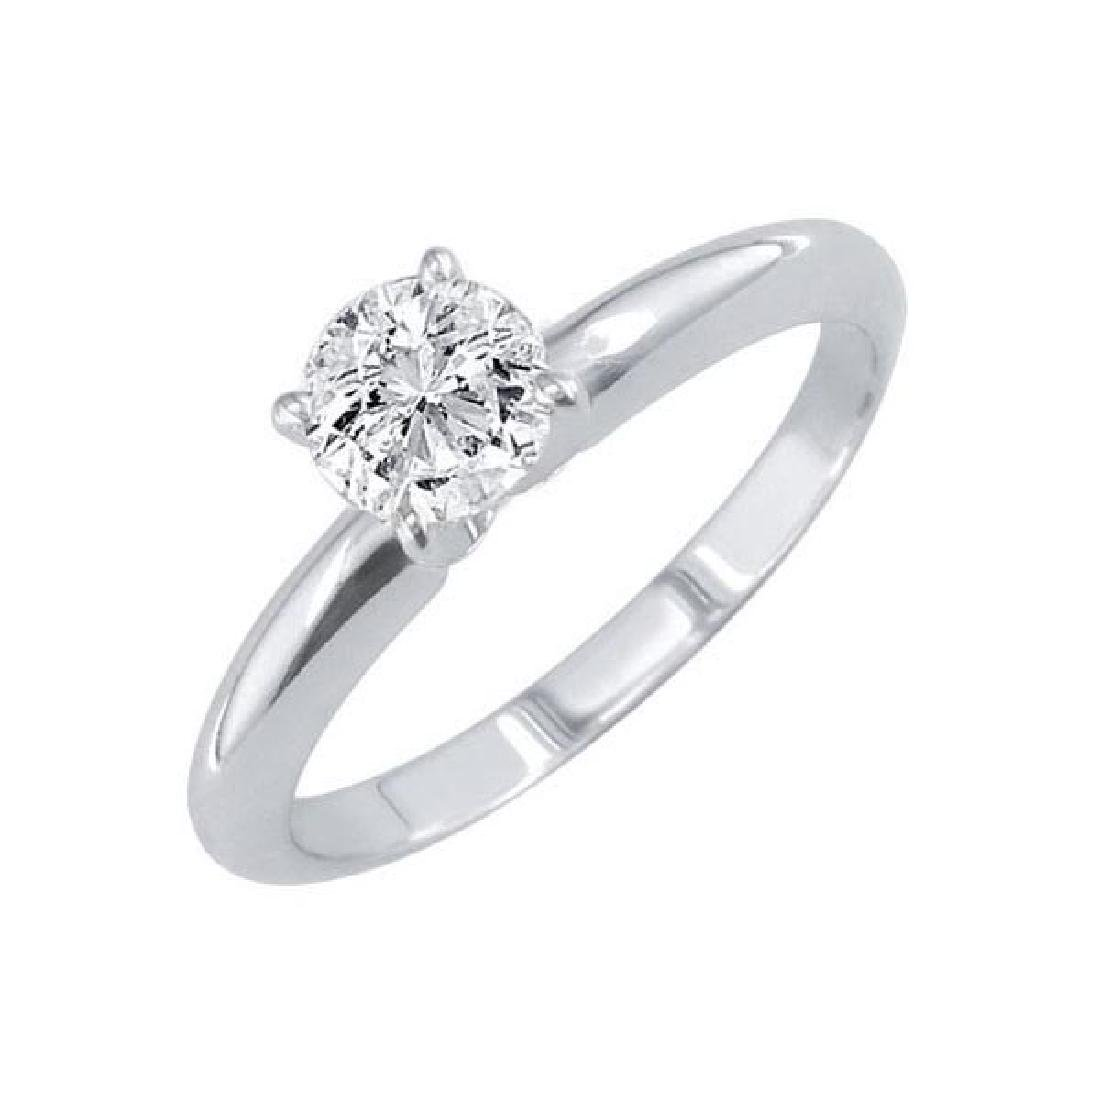 Certified 0.73 CTW Round Diamond Solitaire 14k Ring F/S